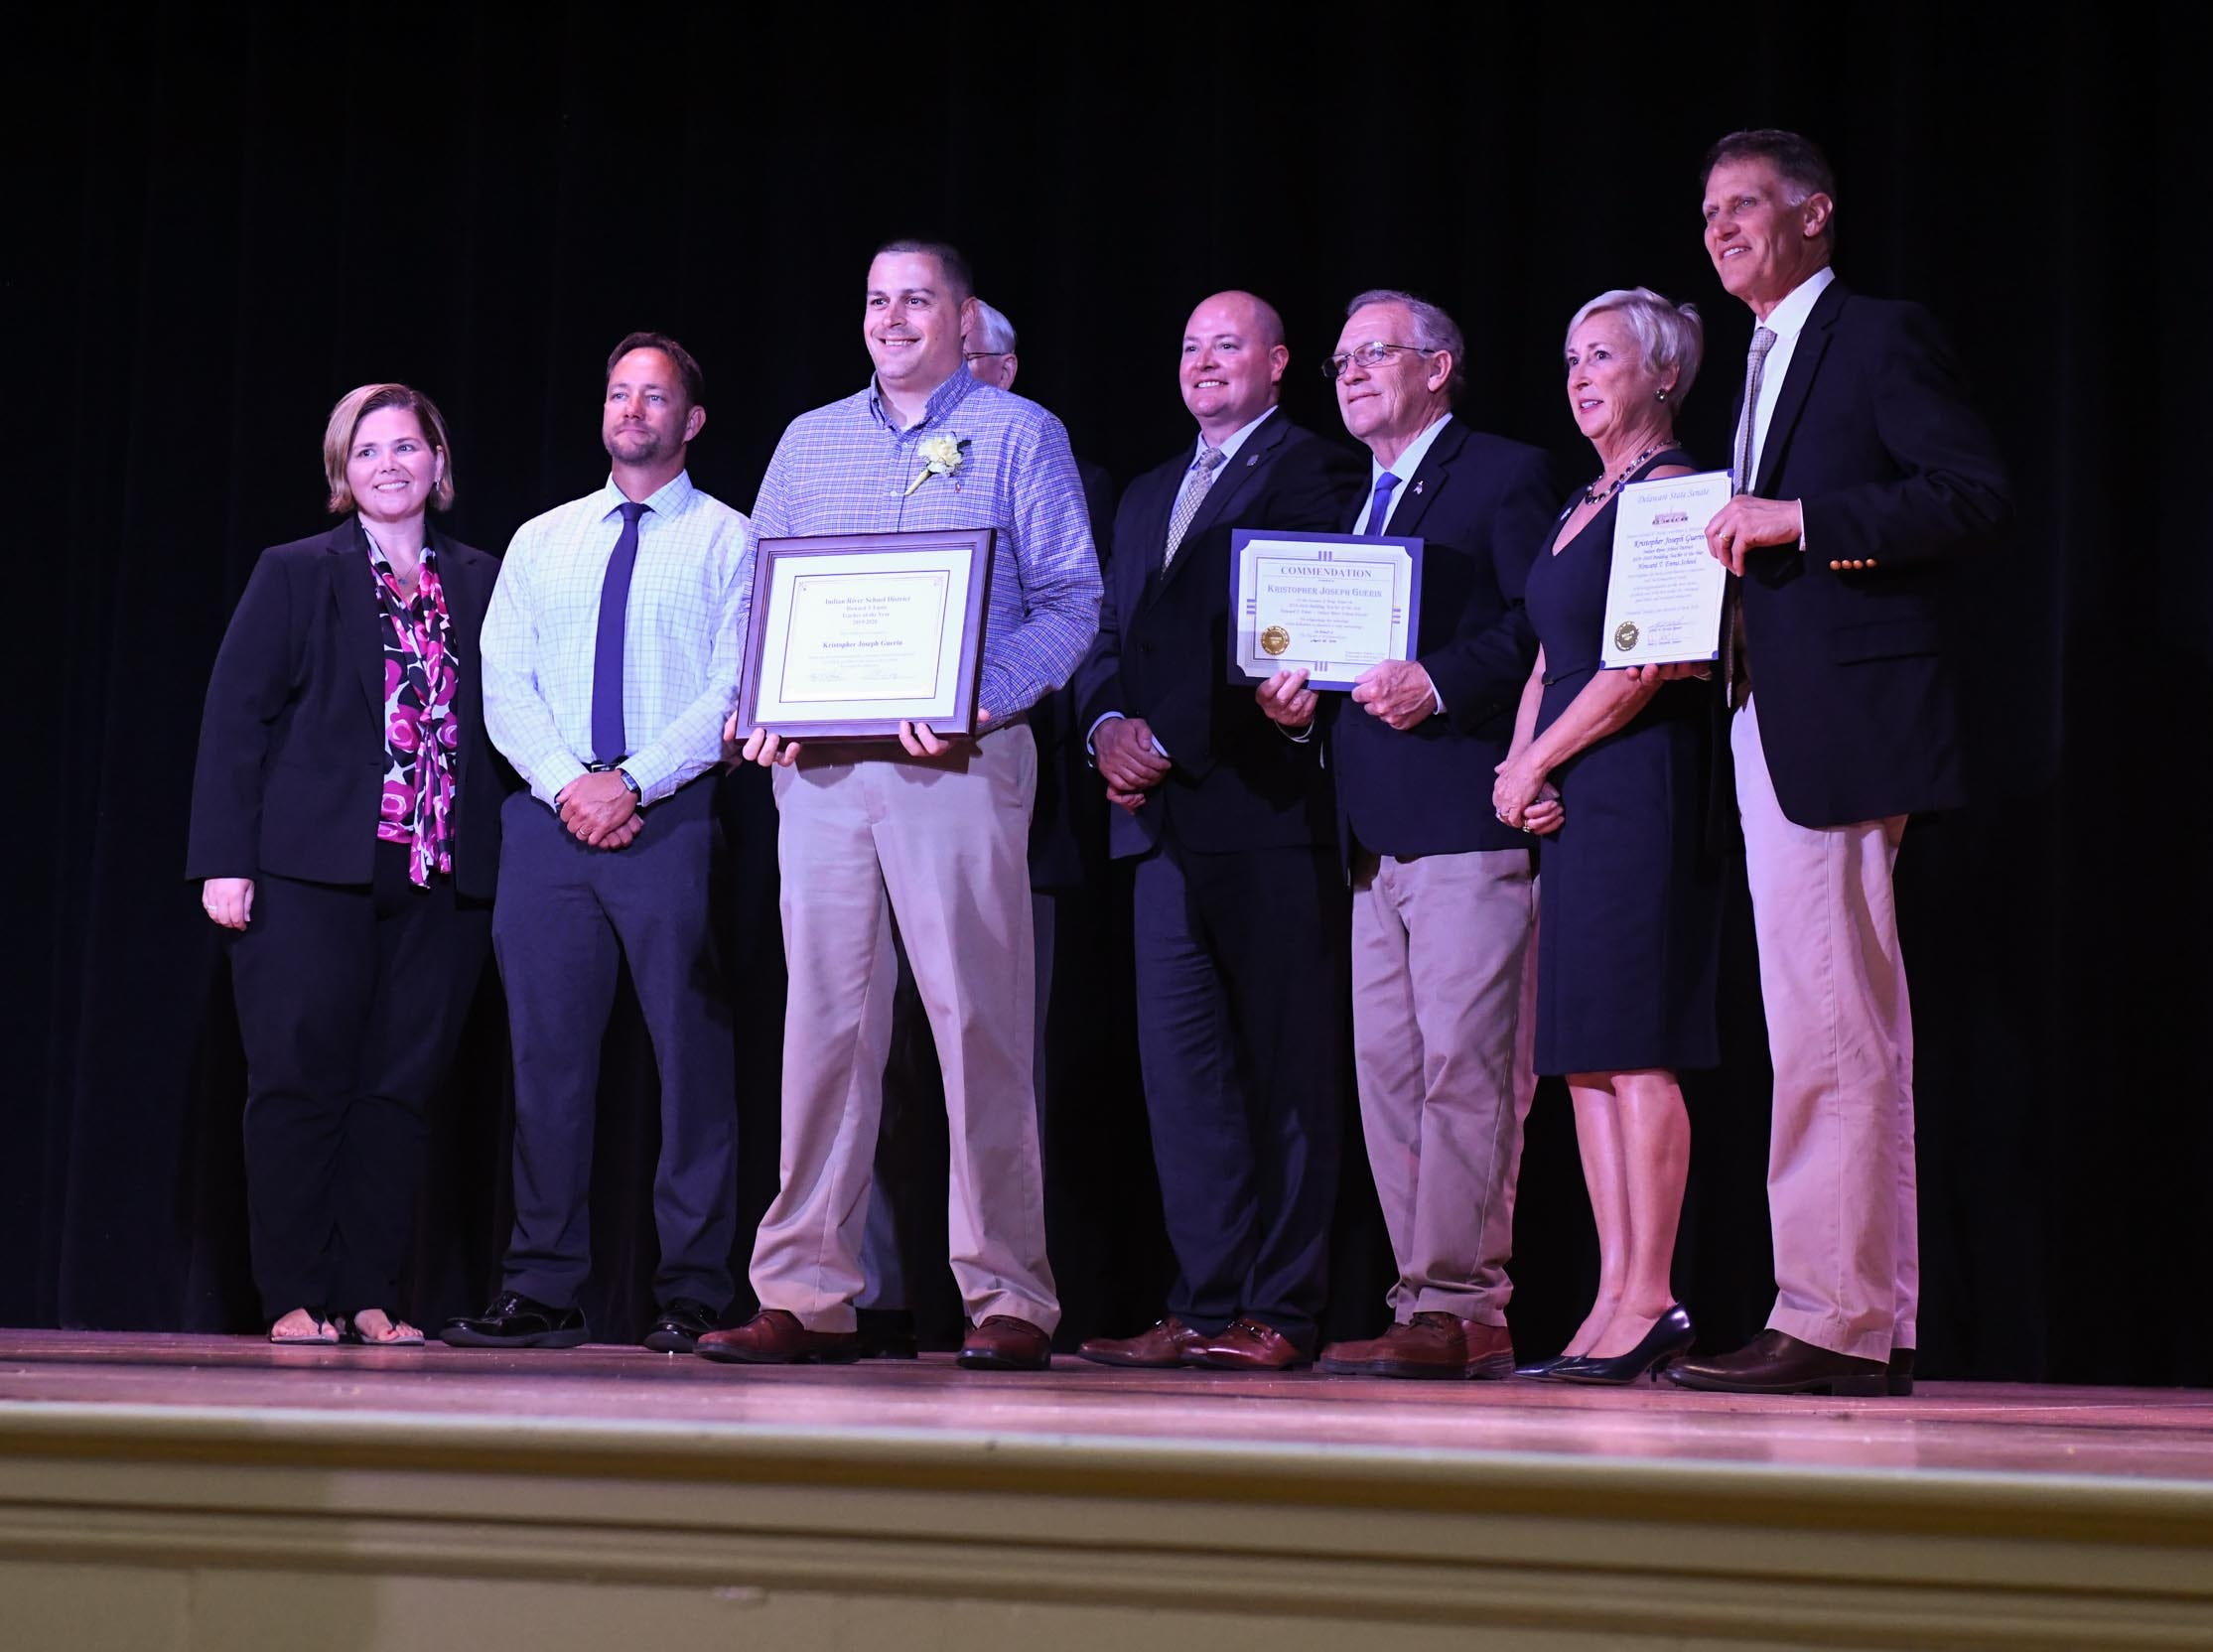 Kristopher Guerin, Howard T. Ennis, receives his award for the teacher of the year at his school on Tuesday, April 30, 2019.